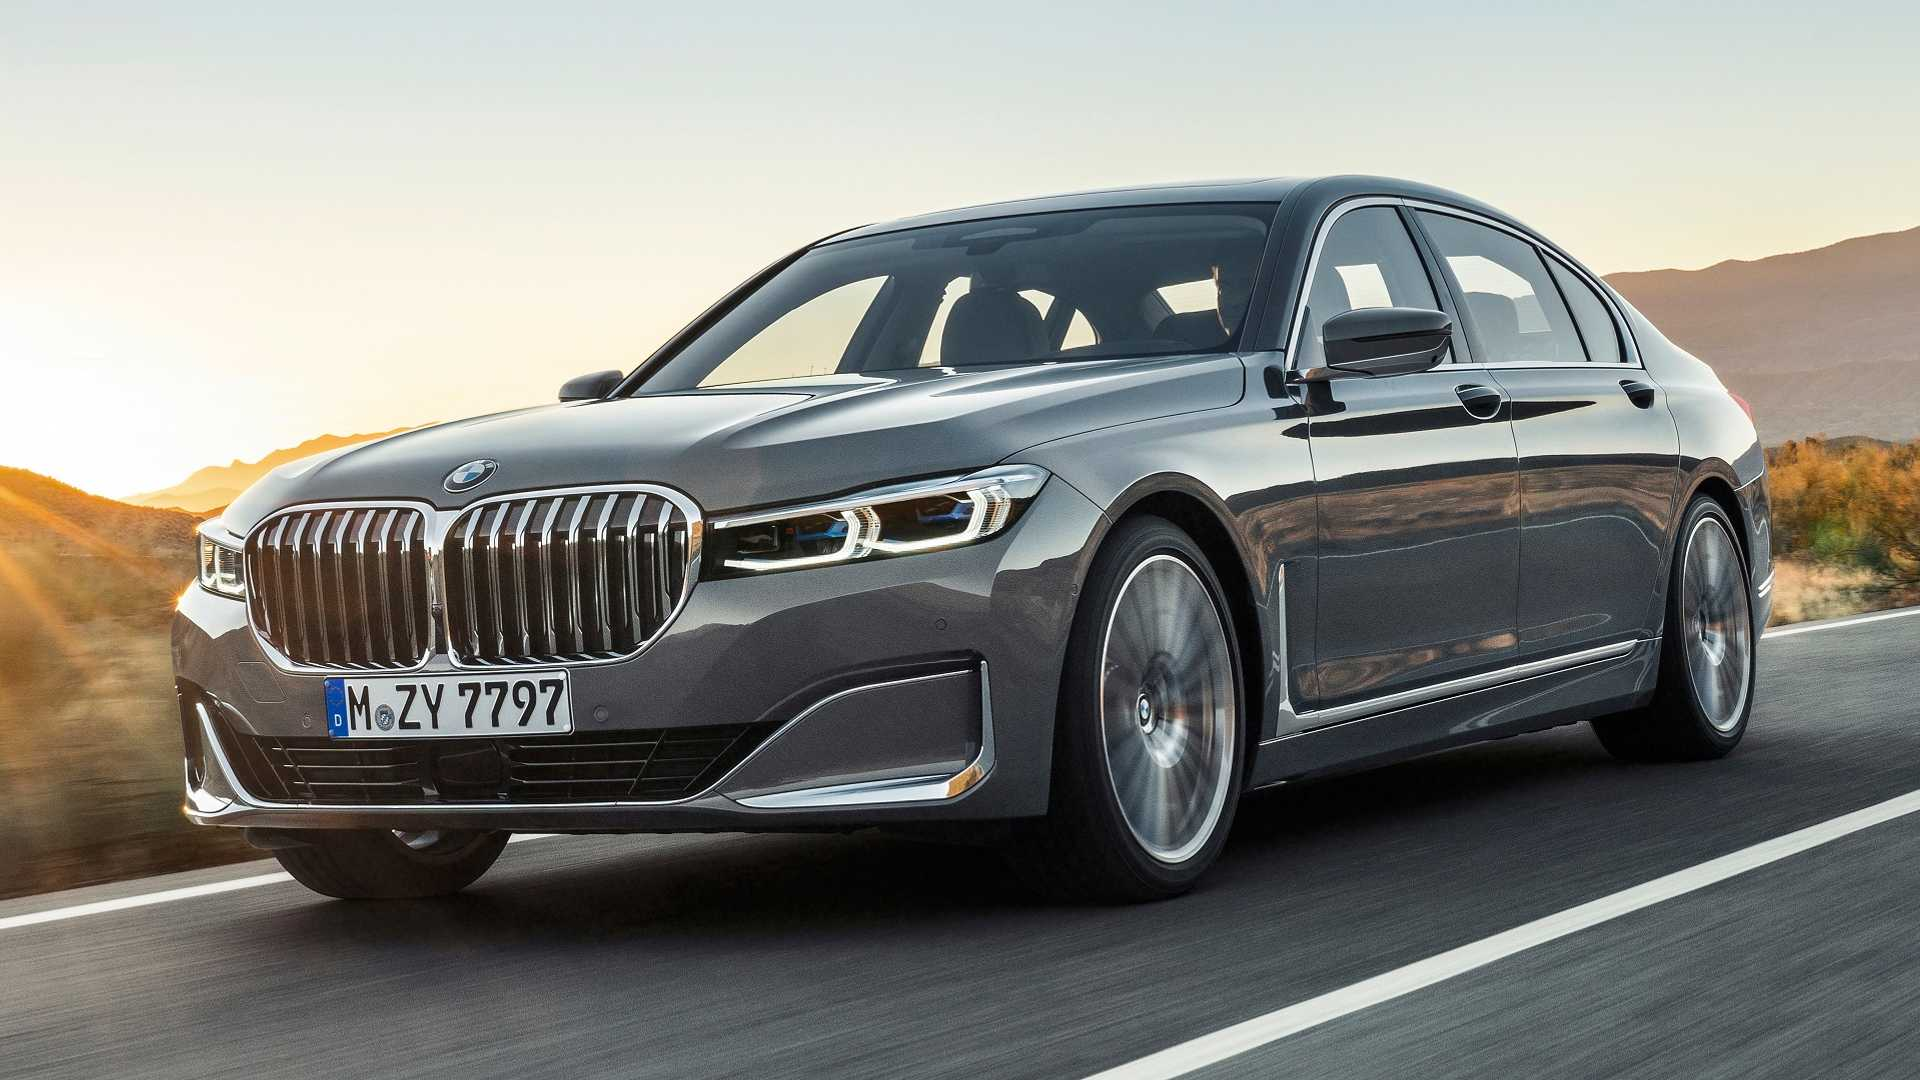 85 New 2020 BMW 7 Series Research New by 2020 BMW 7 Series